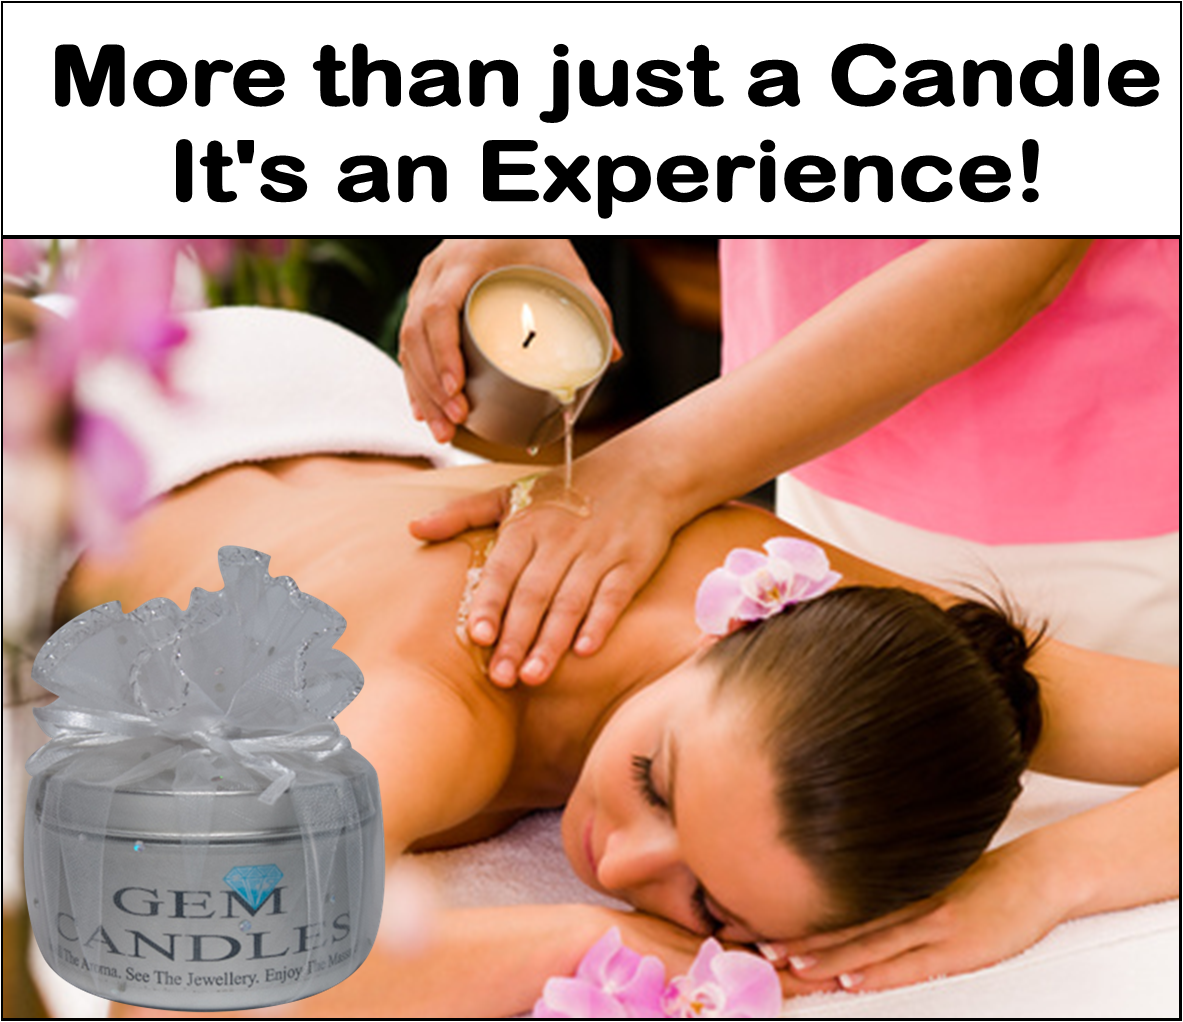 Massage Jewellery In a Candle - Unscented